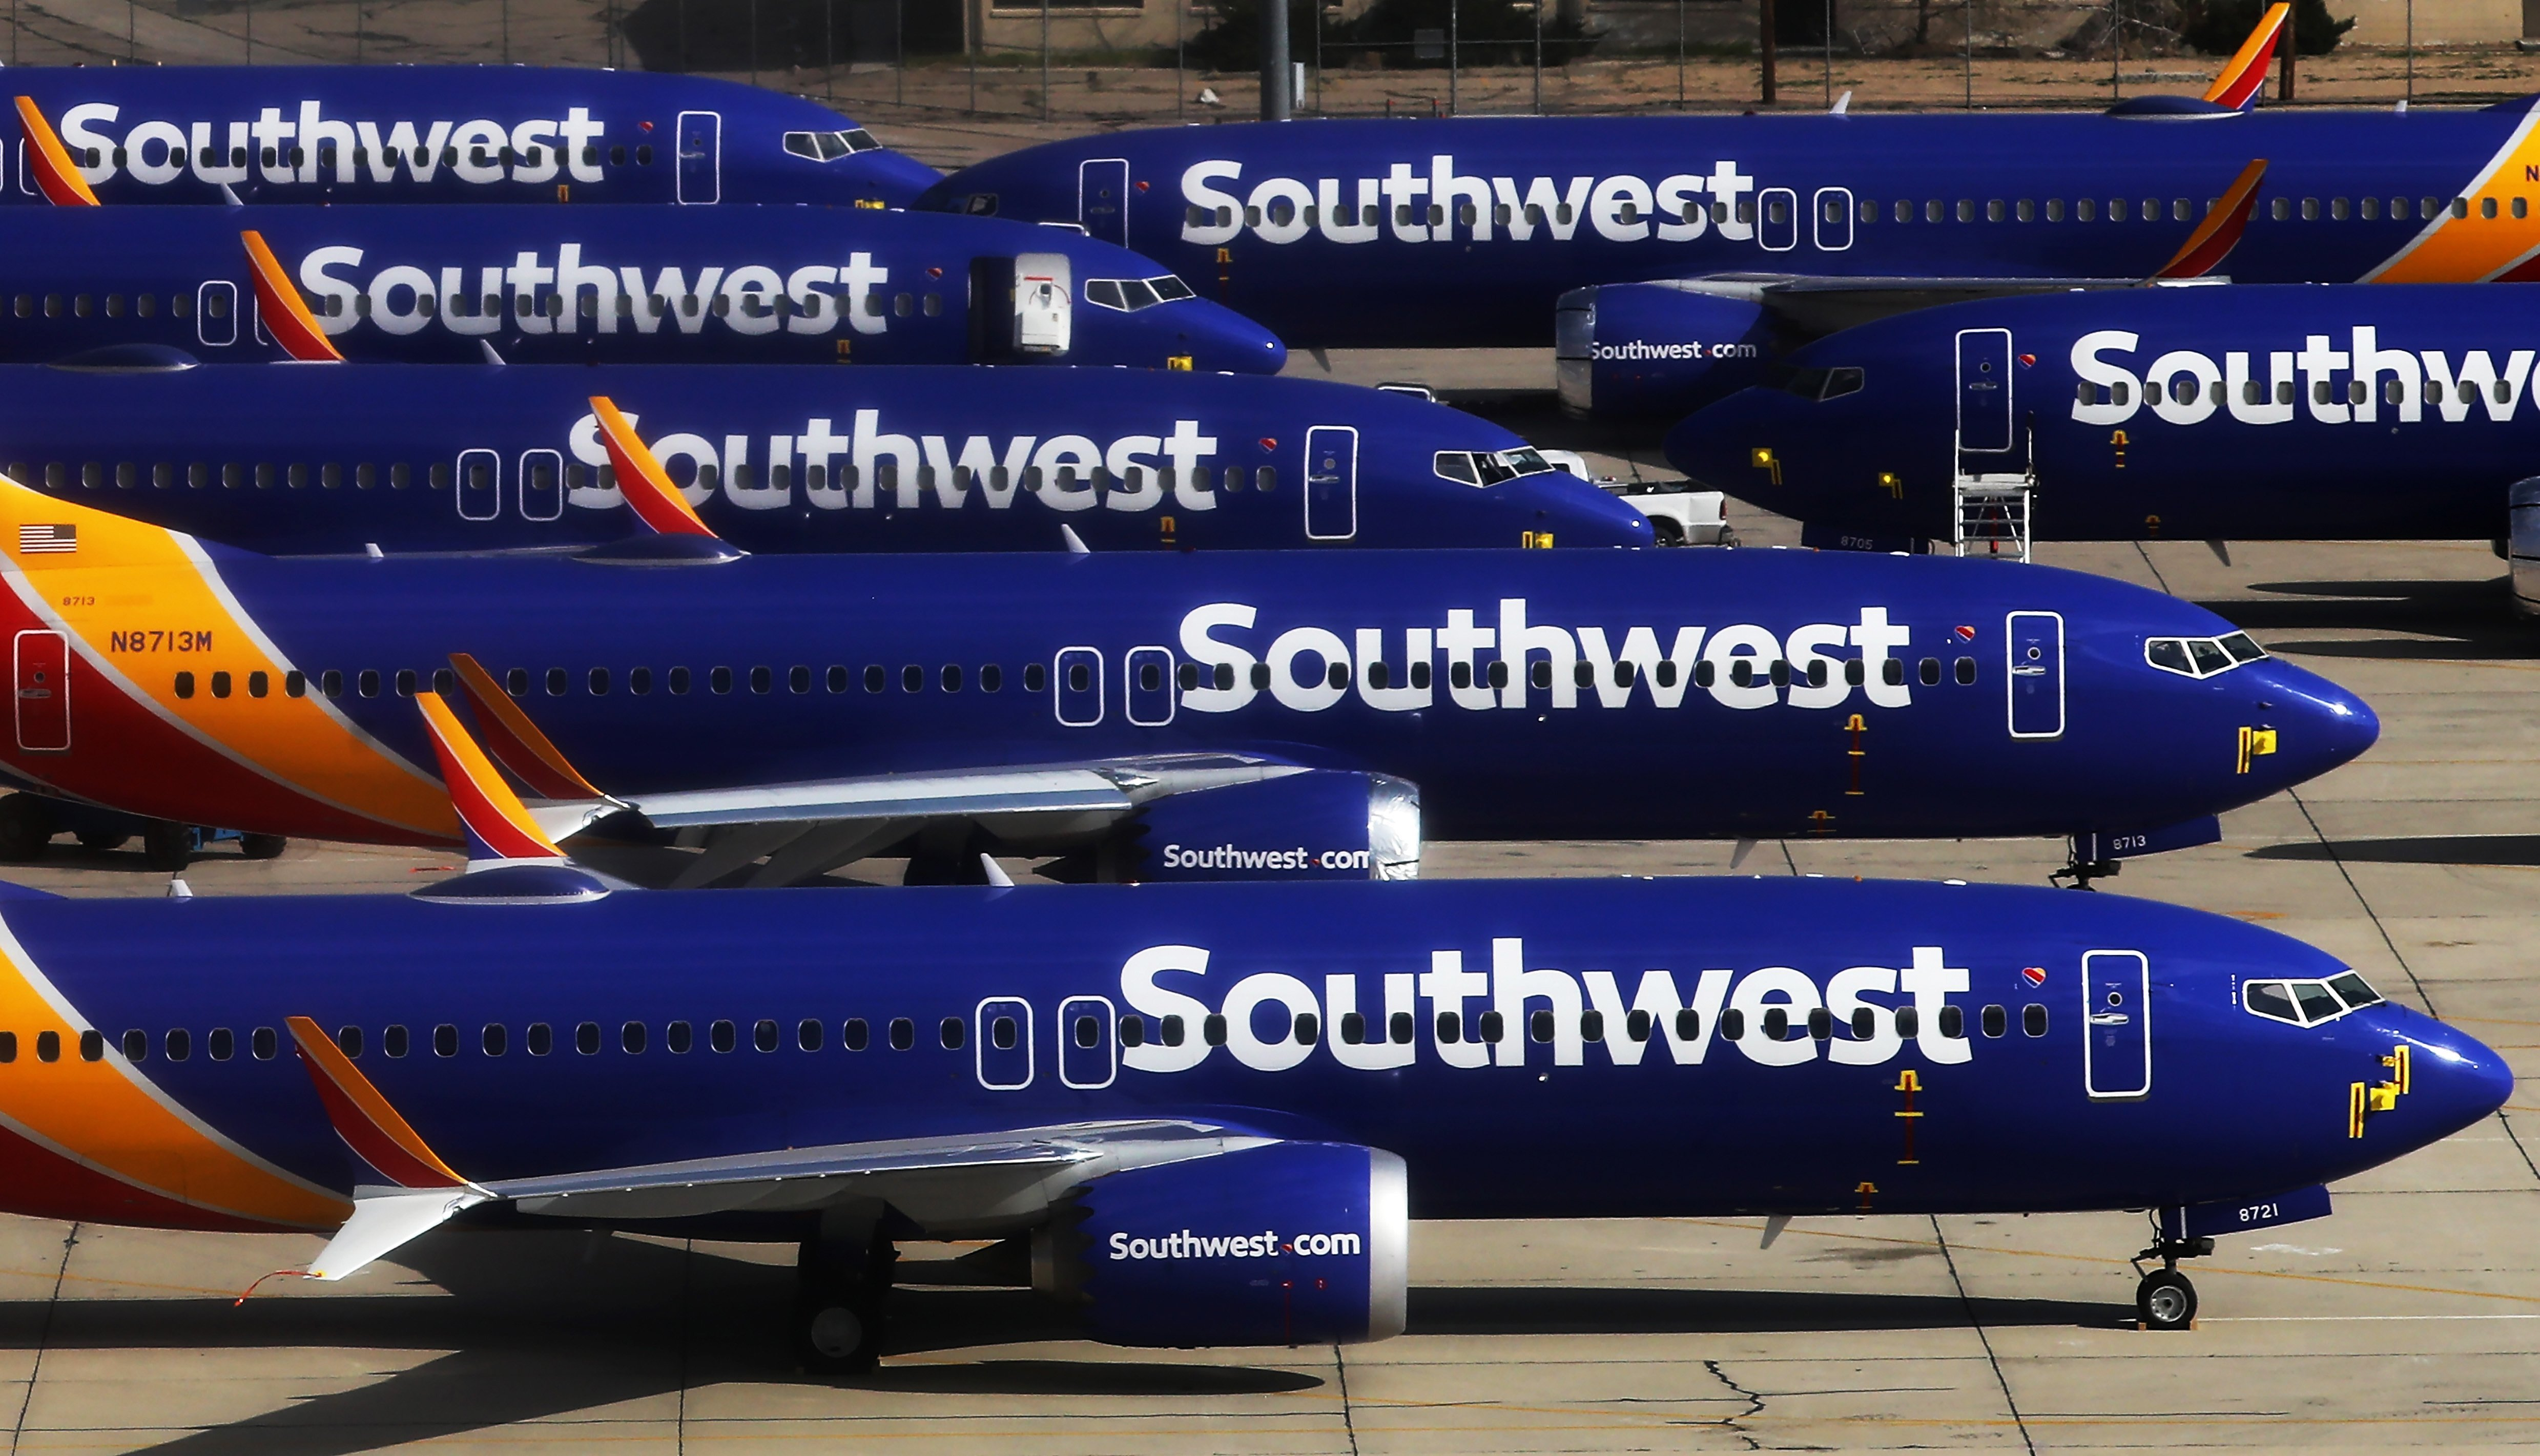 Southwest Airlines to share proceeds from Boeing 737 Max agreement with employees